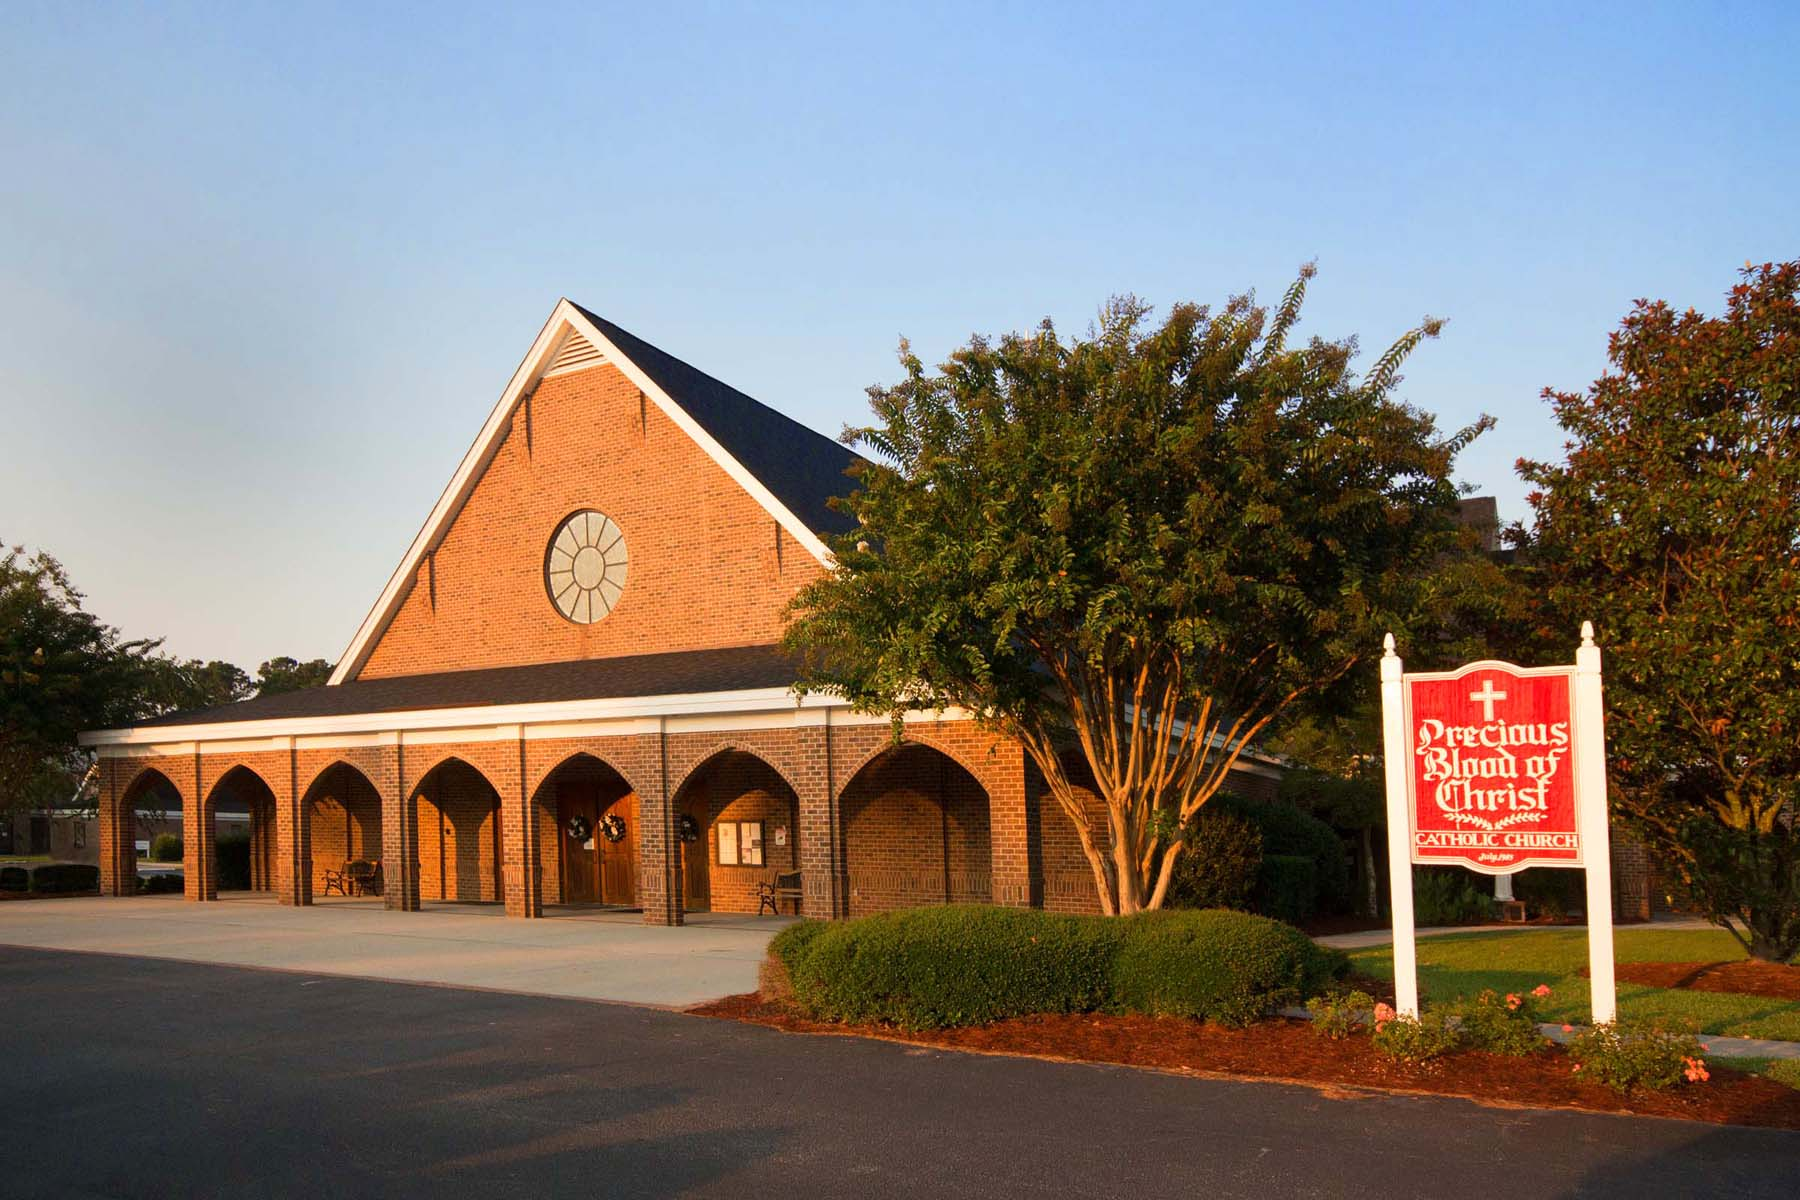 PBOC current information:   – Important Parish information as of 9-21-21 –  40 Days for Life – – Women's Club Annual Craft Fair –  Covid update included